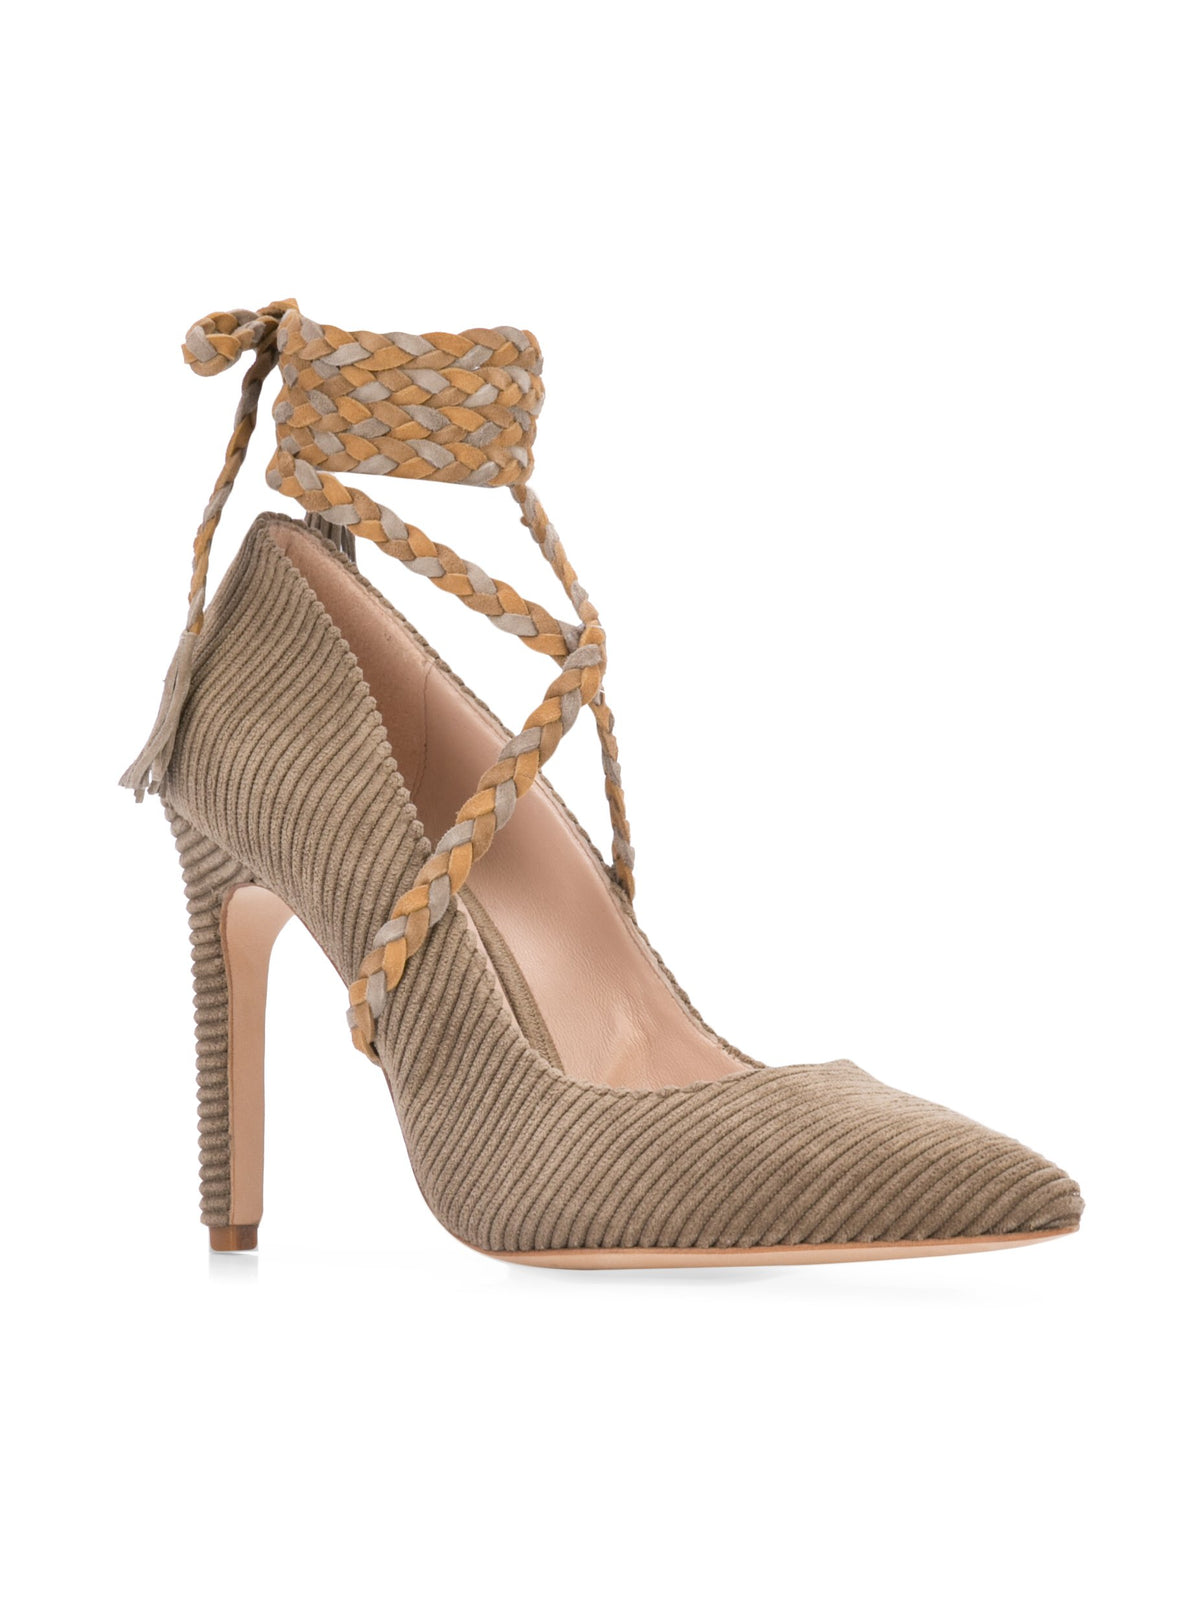 Cleopatra Pump - Taupe corduroy with removable suede wraps. Front Angle View